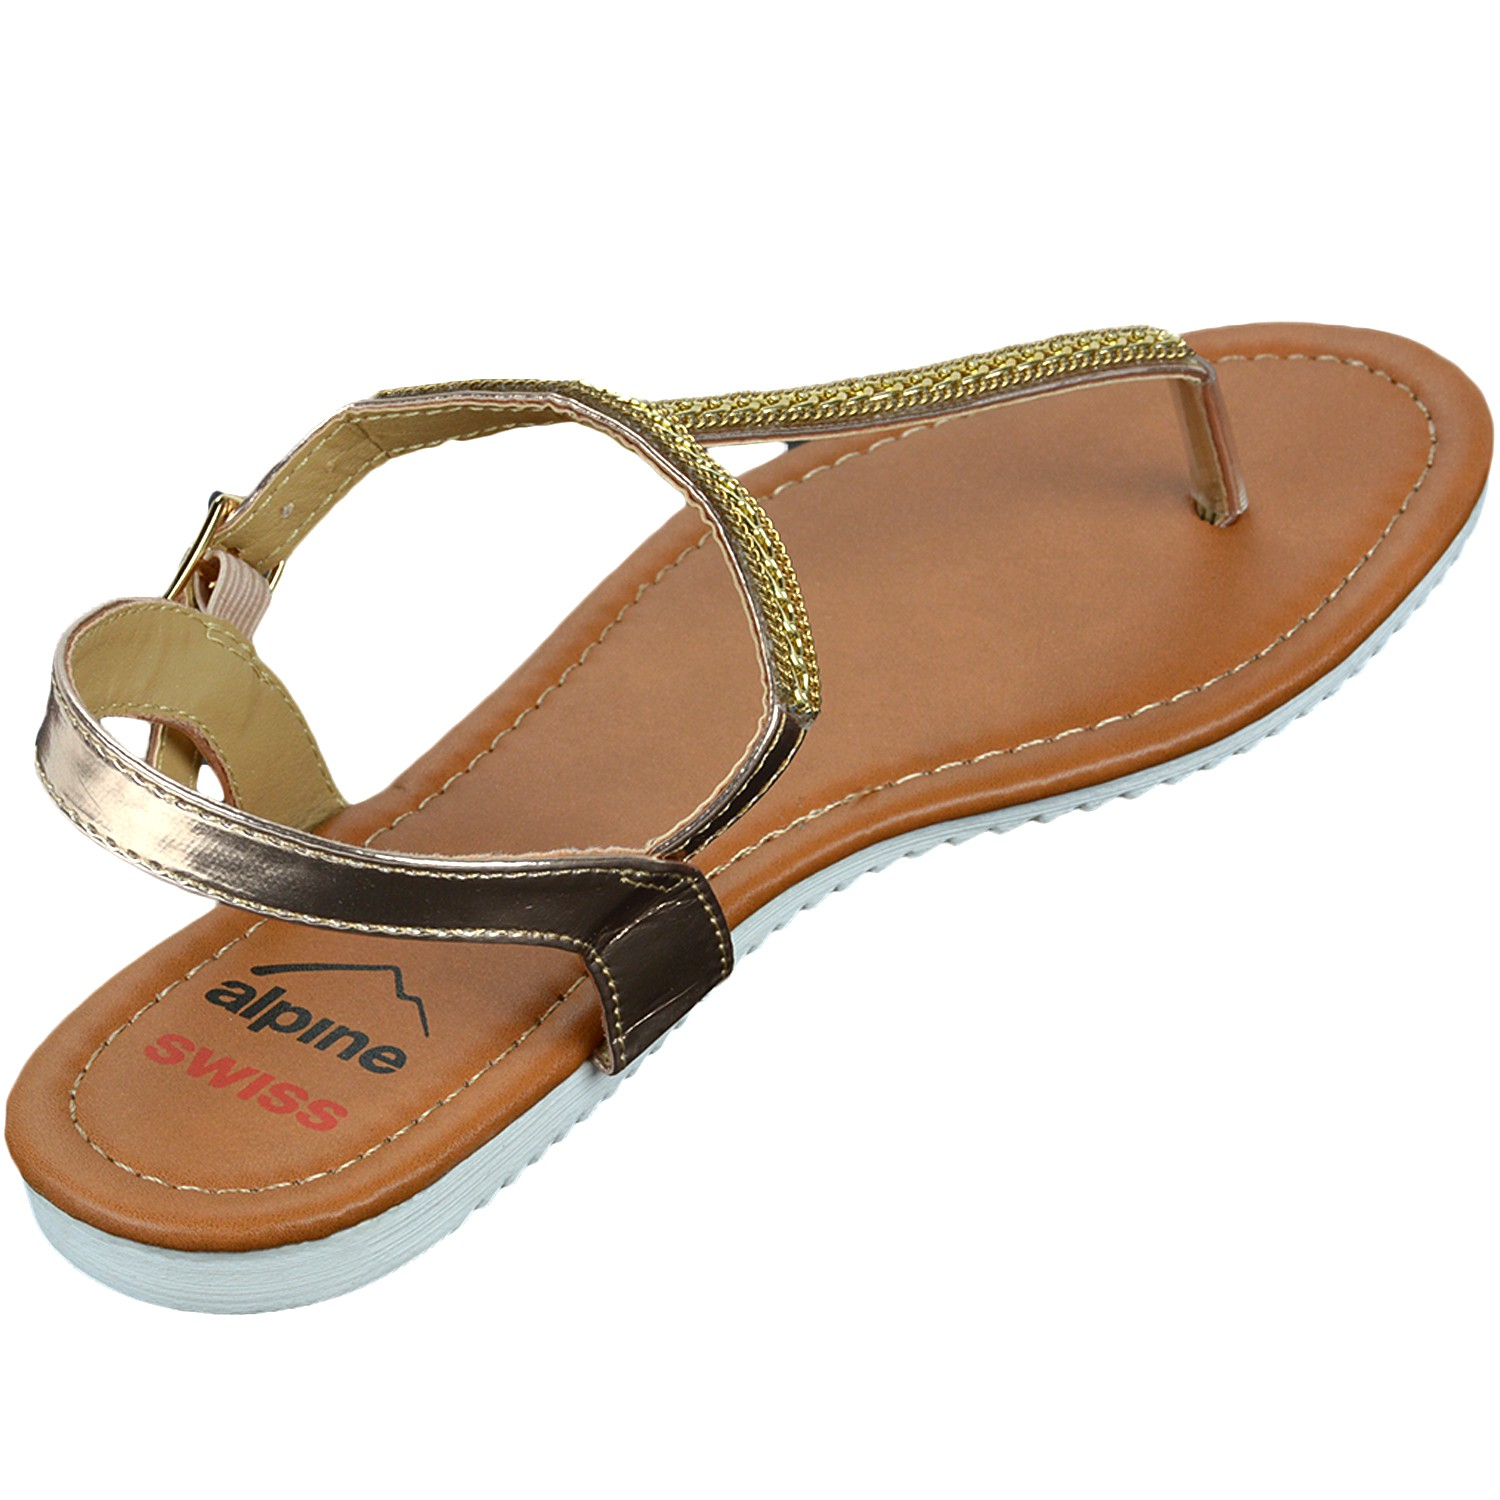 Dressy Flip Flops Womens Shoes